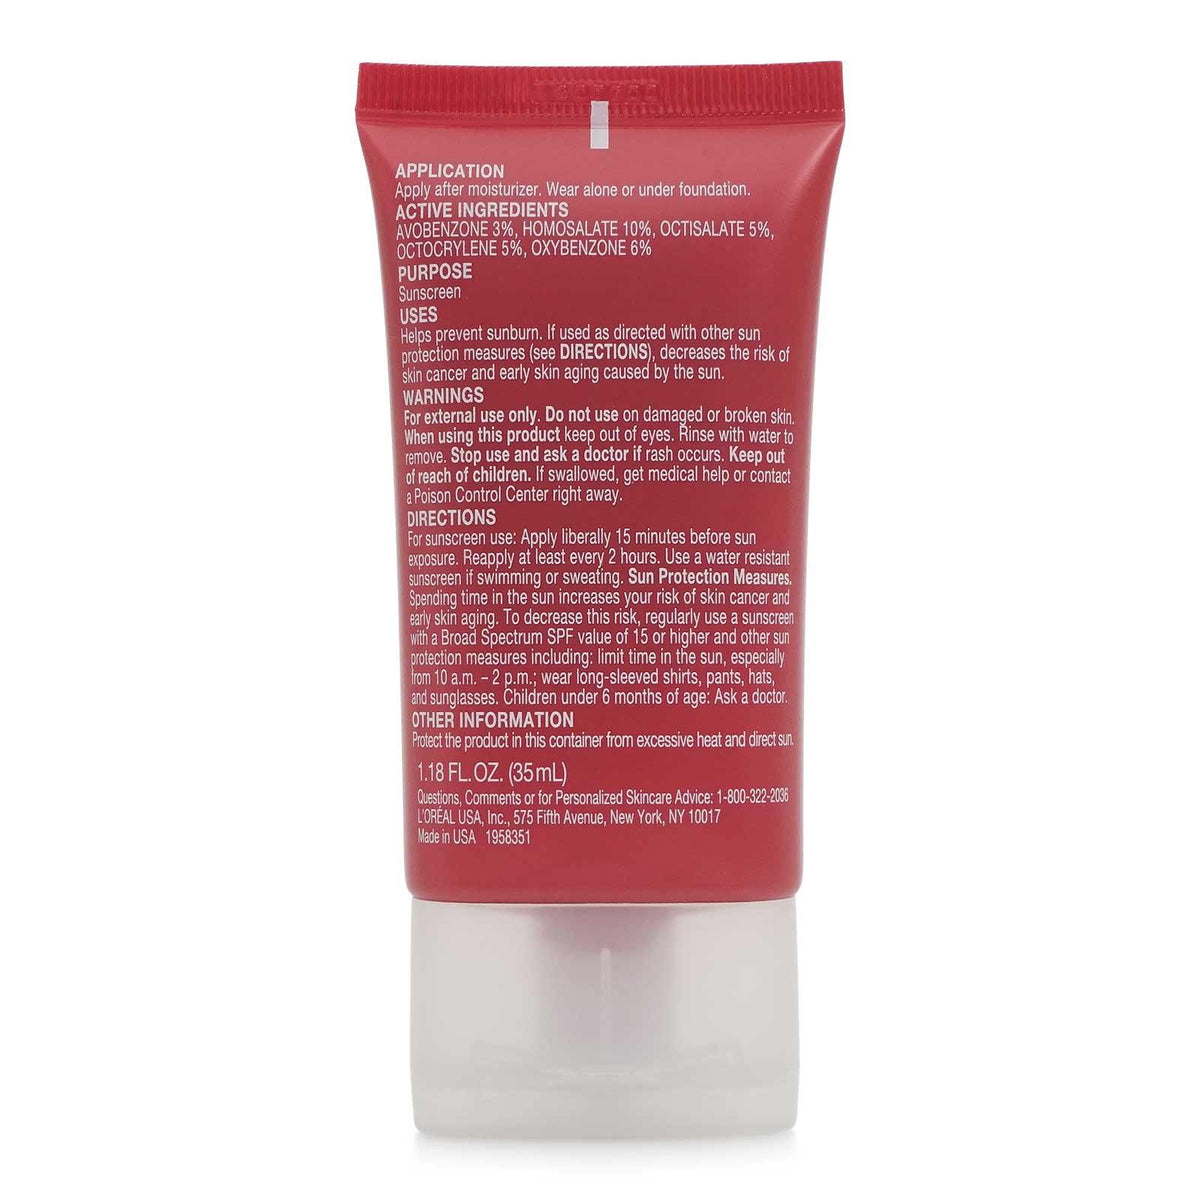 L'Oreal RevitaLift Miracle Blur Finishing Cream, SPF 30, 1.18 fl oz (6/cs)